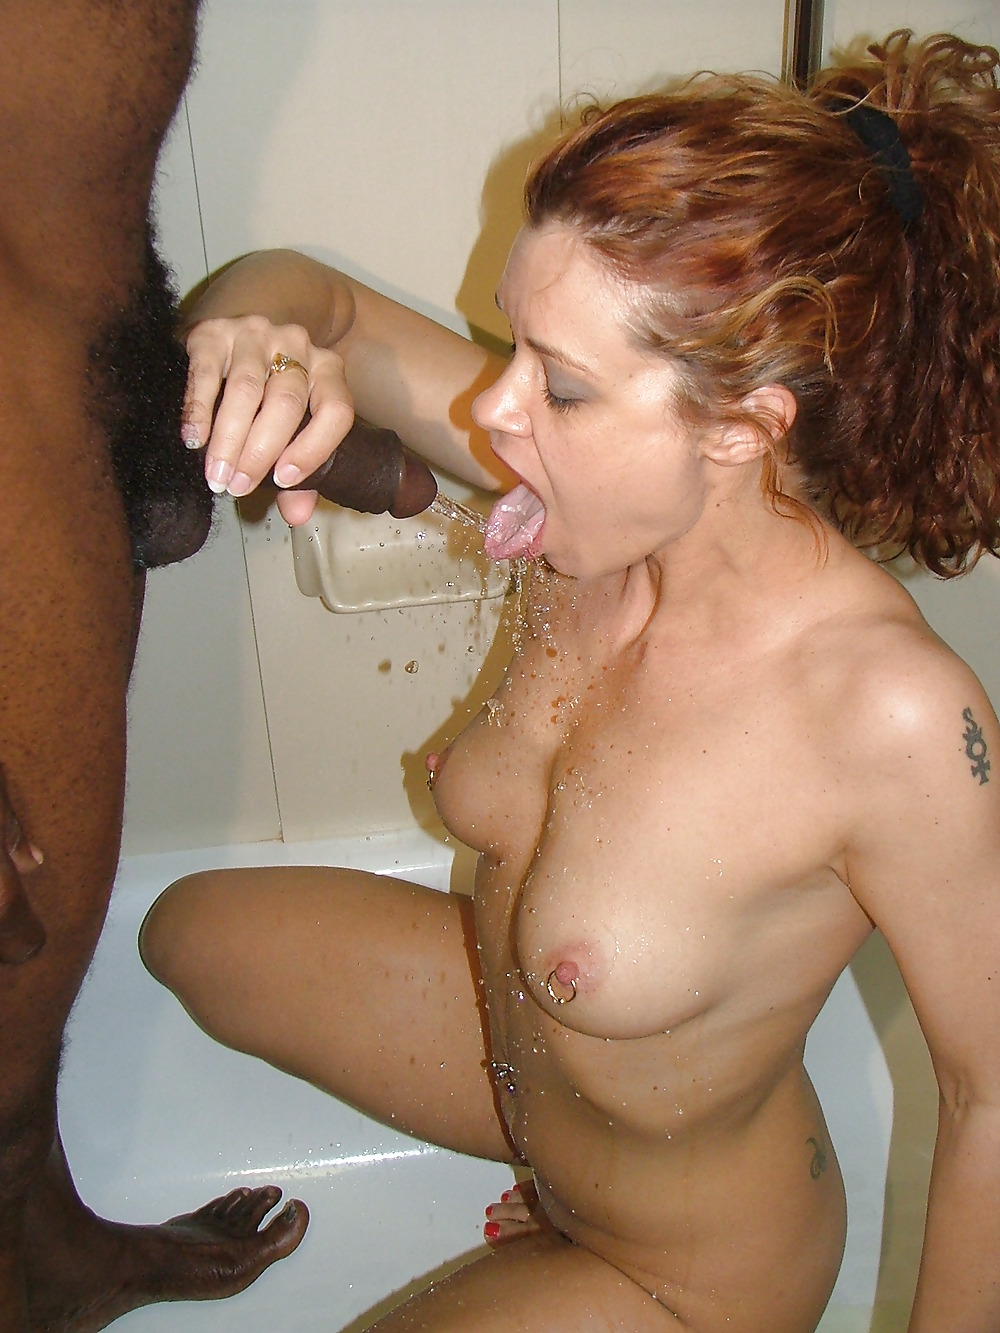 amateur-drink-golden-pee-shower-sexiest-indian-mothers-naked